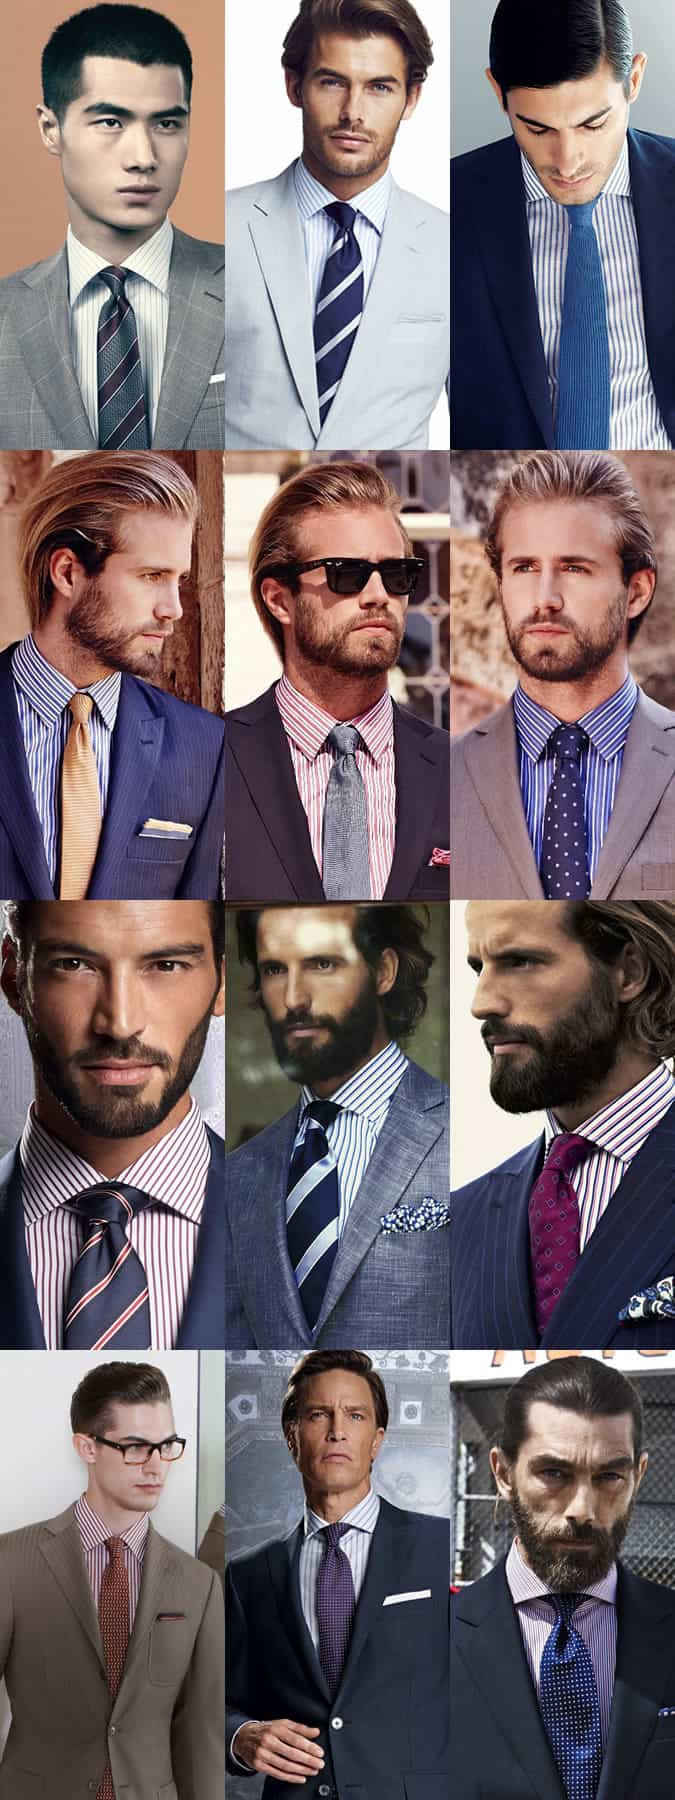 Tie meets shirt a perfect match for Mens dress shirts and ties combinations